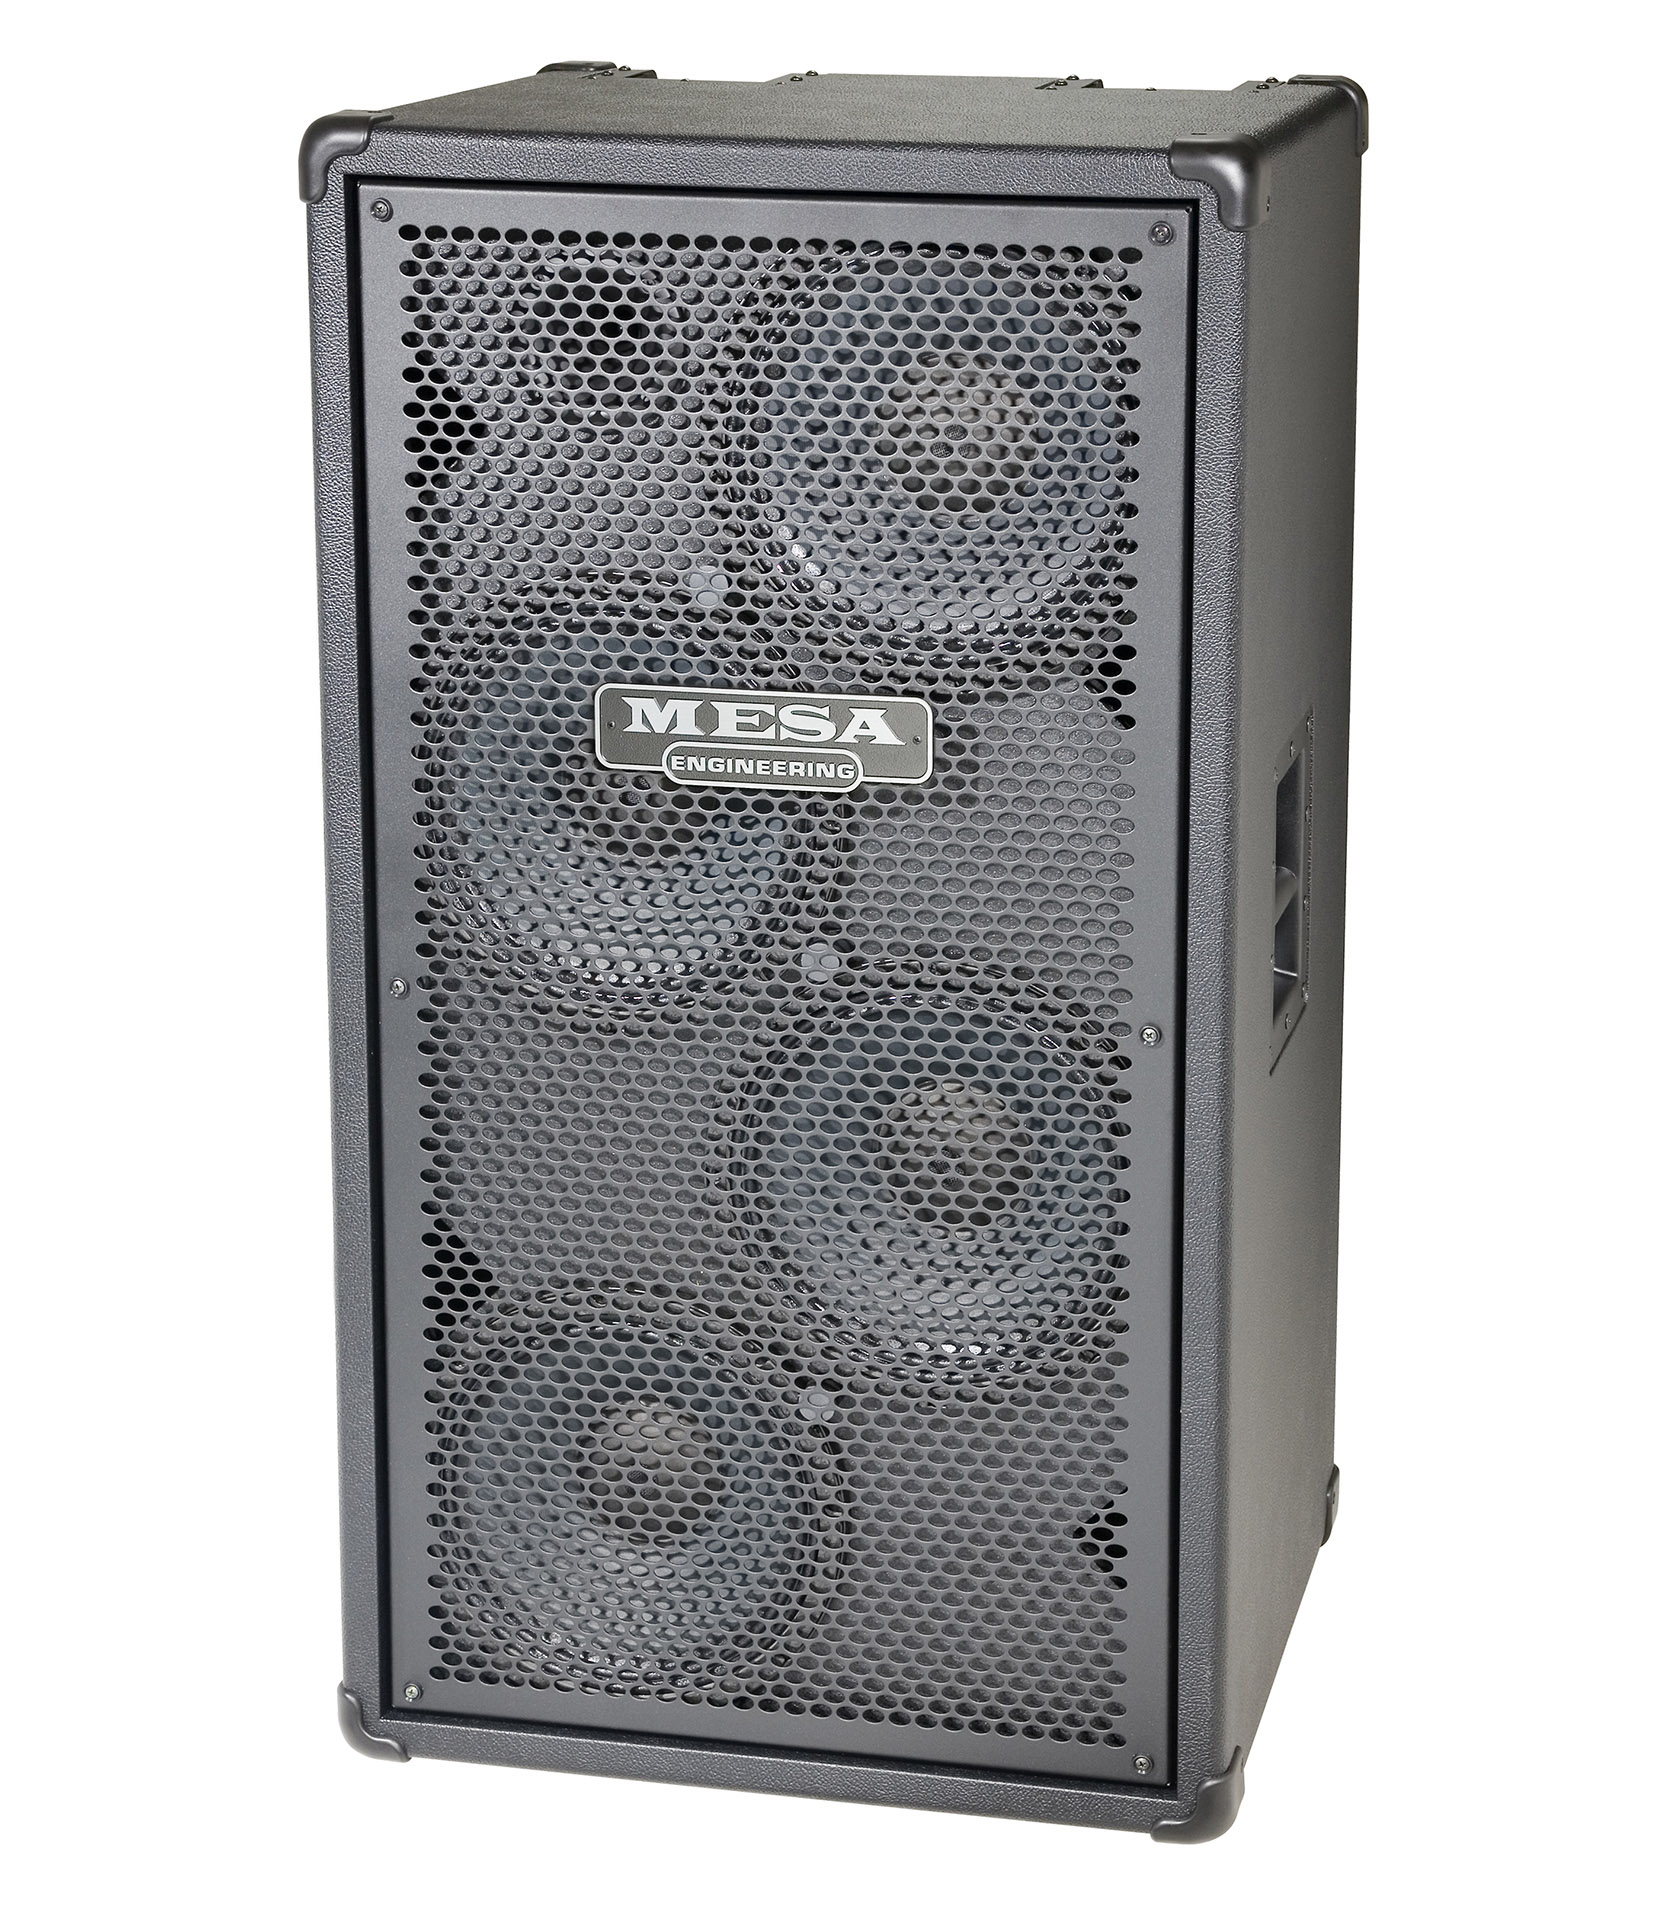 Melody House Musical Instruments Store - 4x12 Standard PowerHouse Bass Cabinet